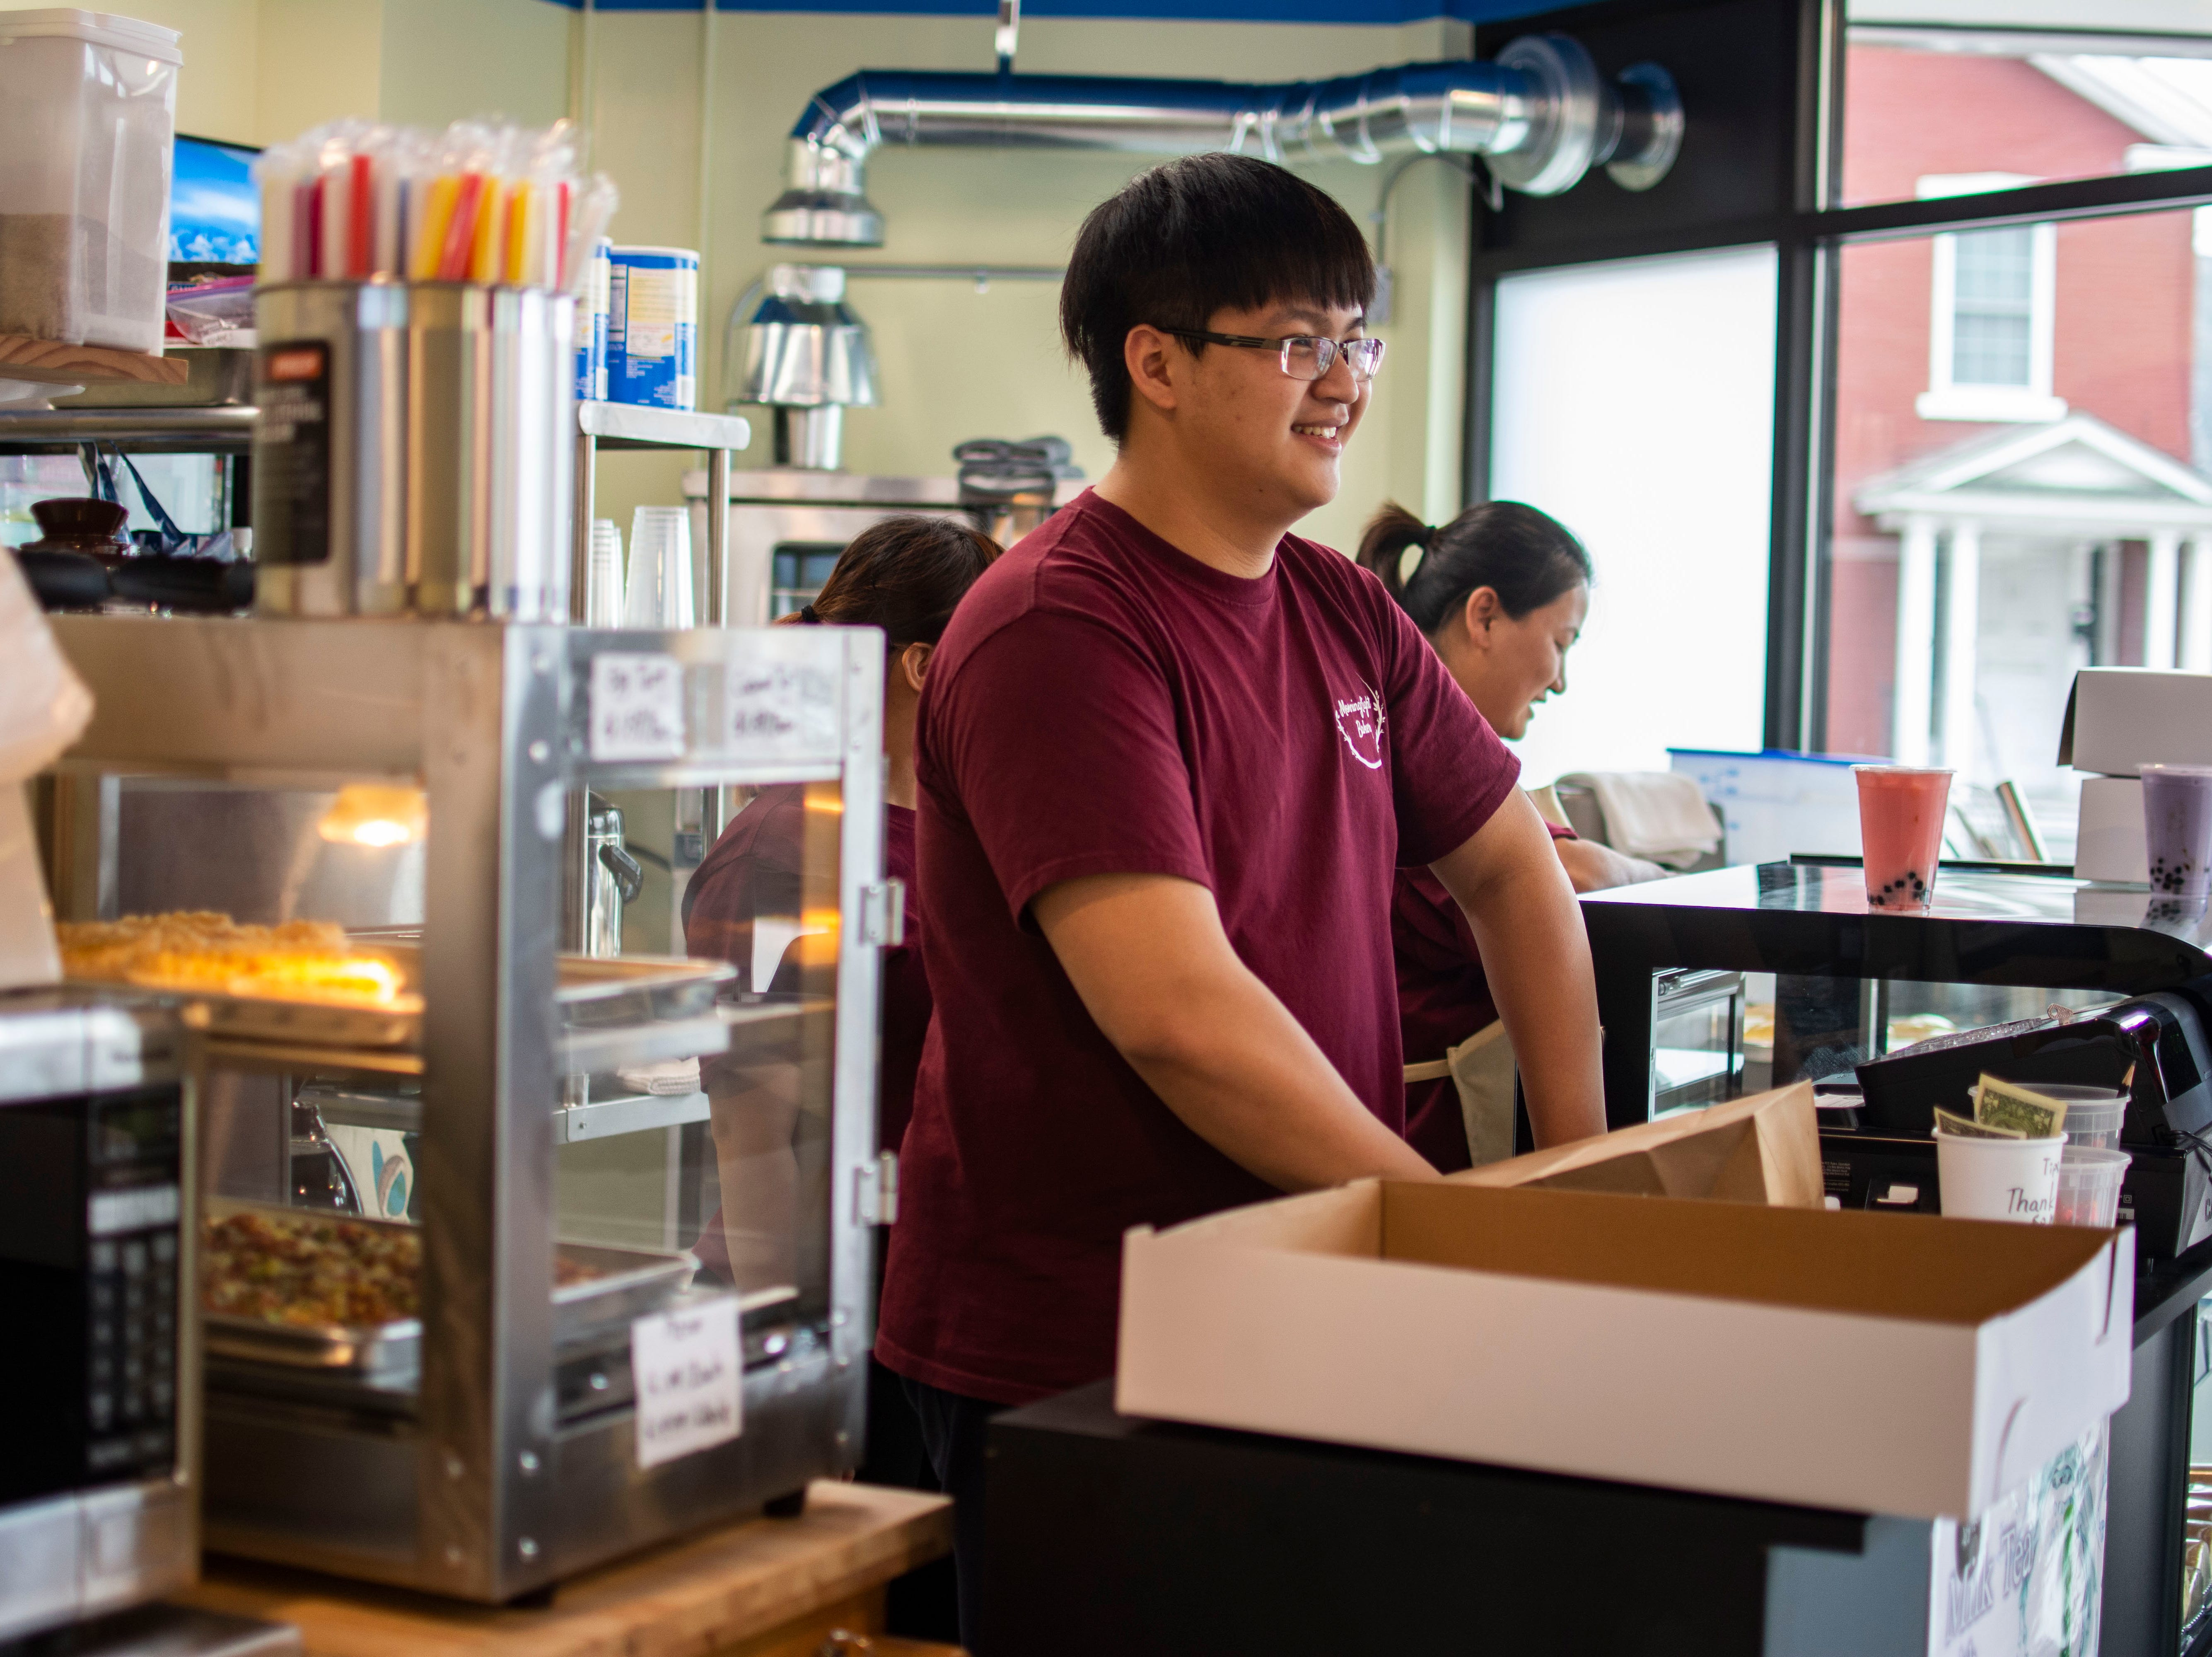 Ken Liu, a UVM computer science student, works the counter at his parents' Morning Light bakery on April 12, 2019